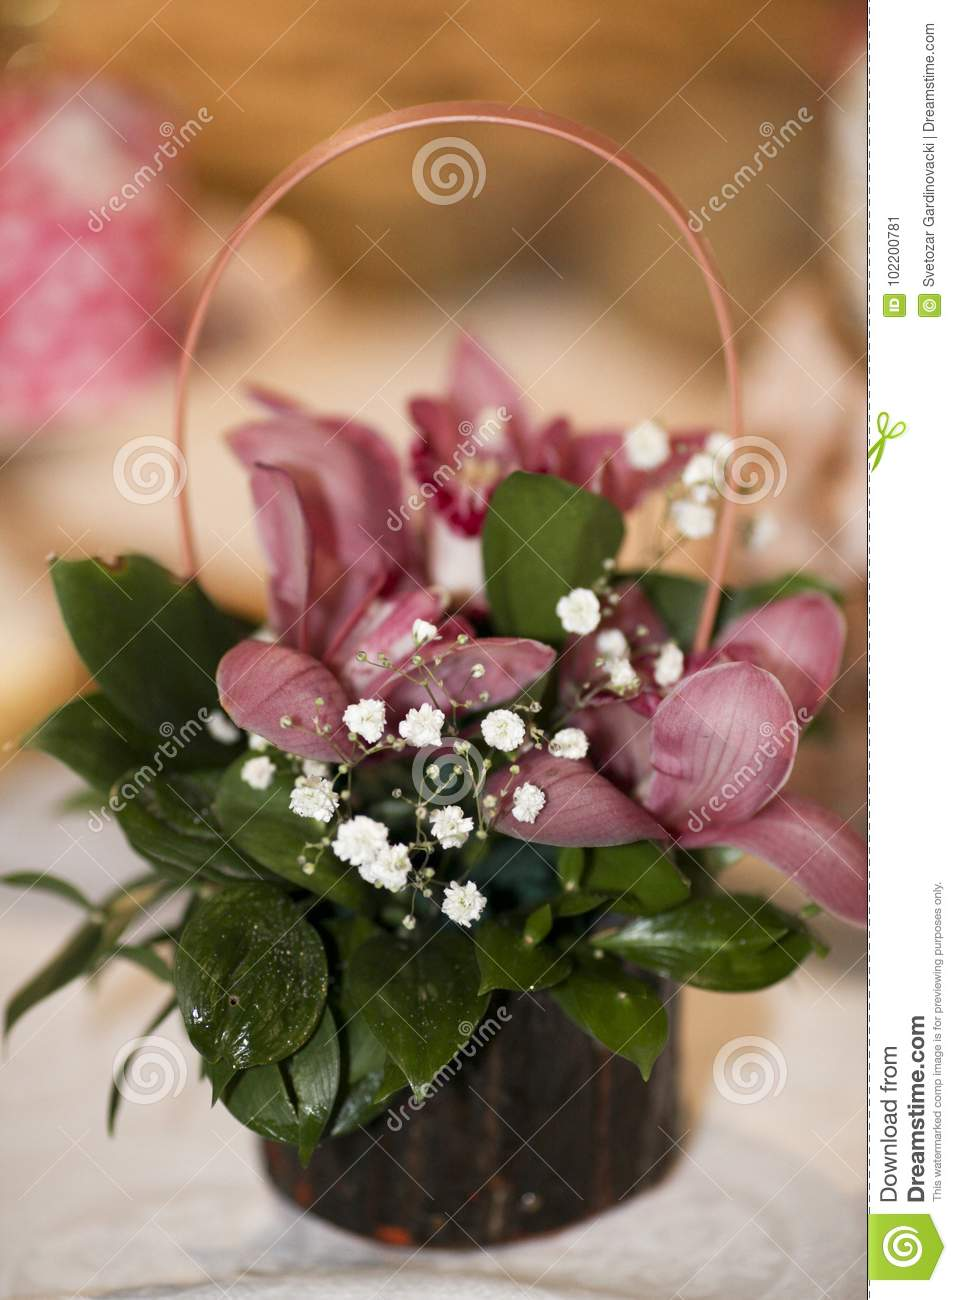 Beautiful Flowers Bouquet Stock Image Image Of Beautiful 102200781